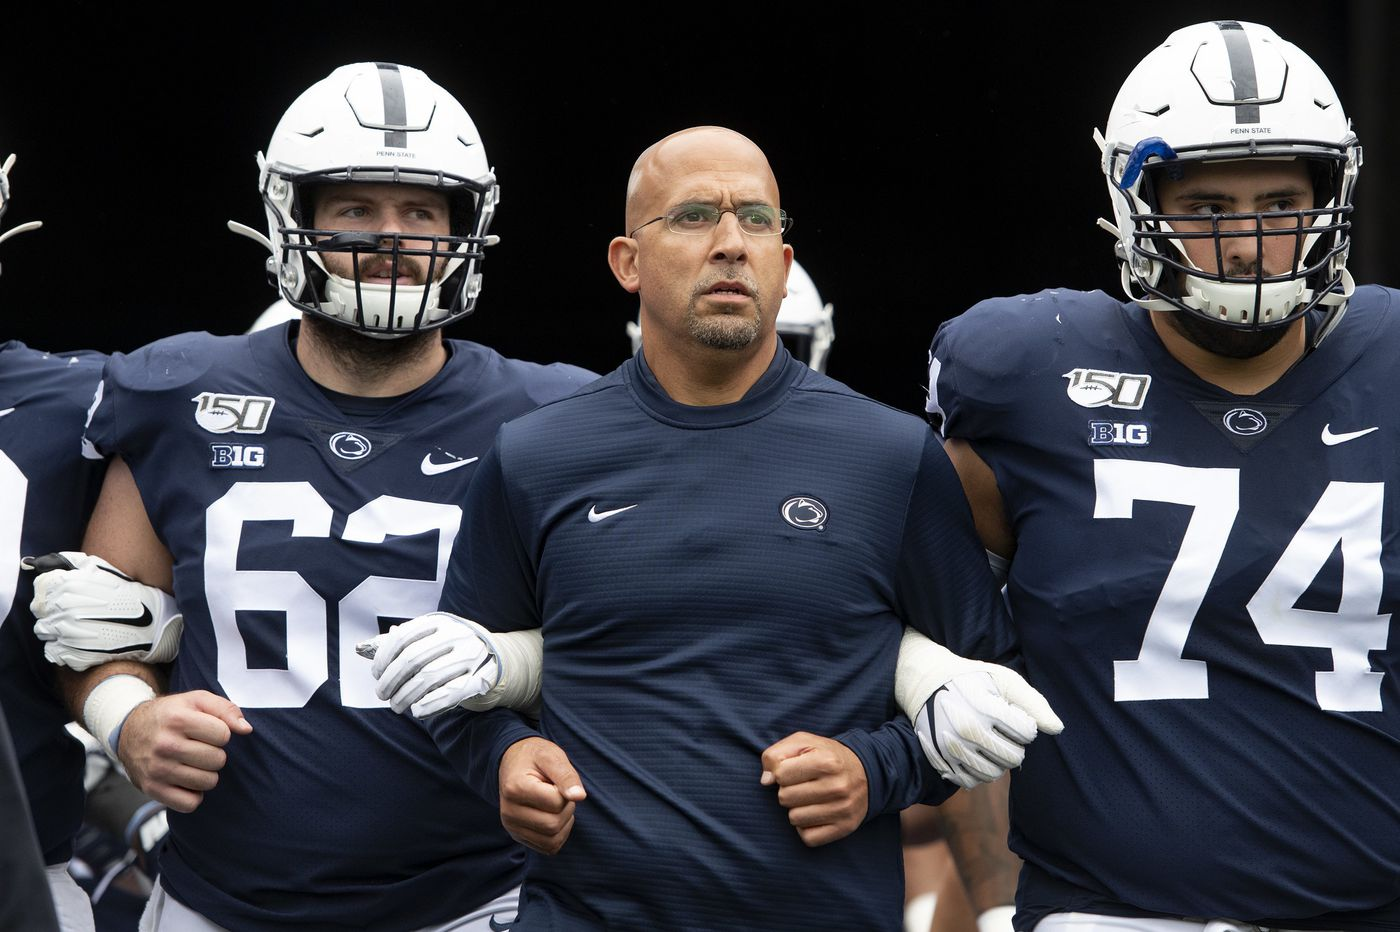 ESPN report: James Franklin told a Penn State player not to report a fight involving Micah Parsons